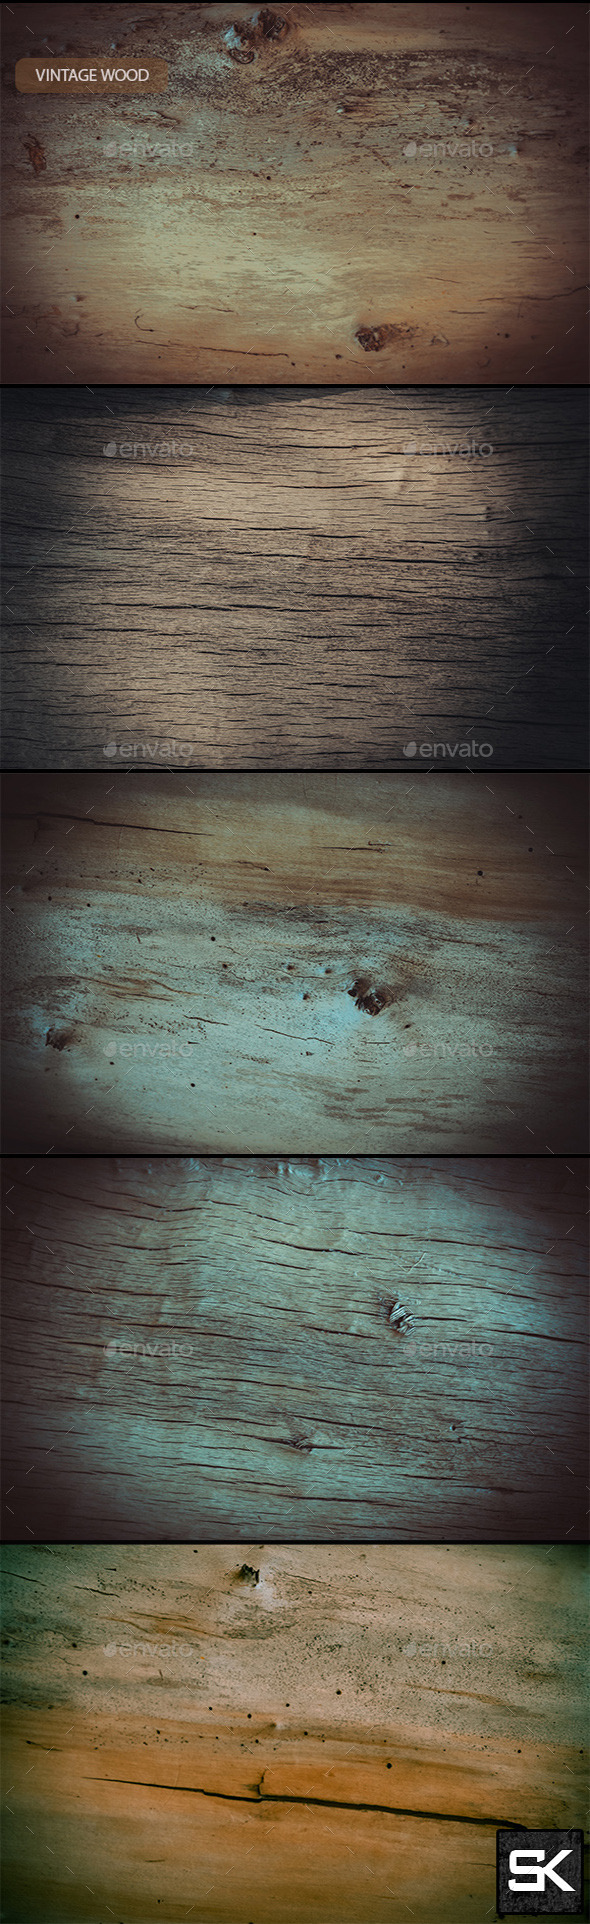 Vintage Wood 5 - Nature Backgrounds